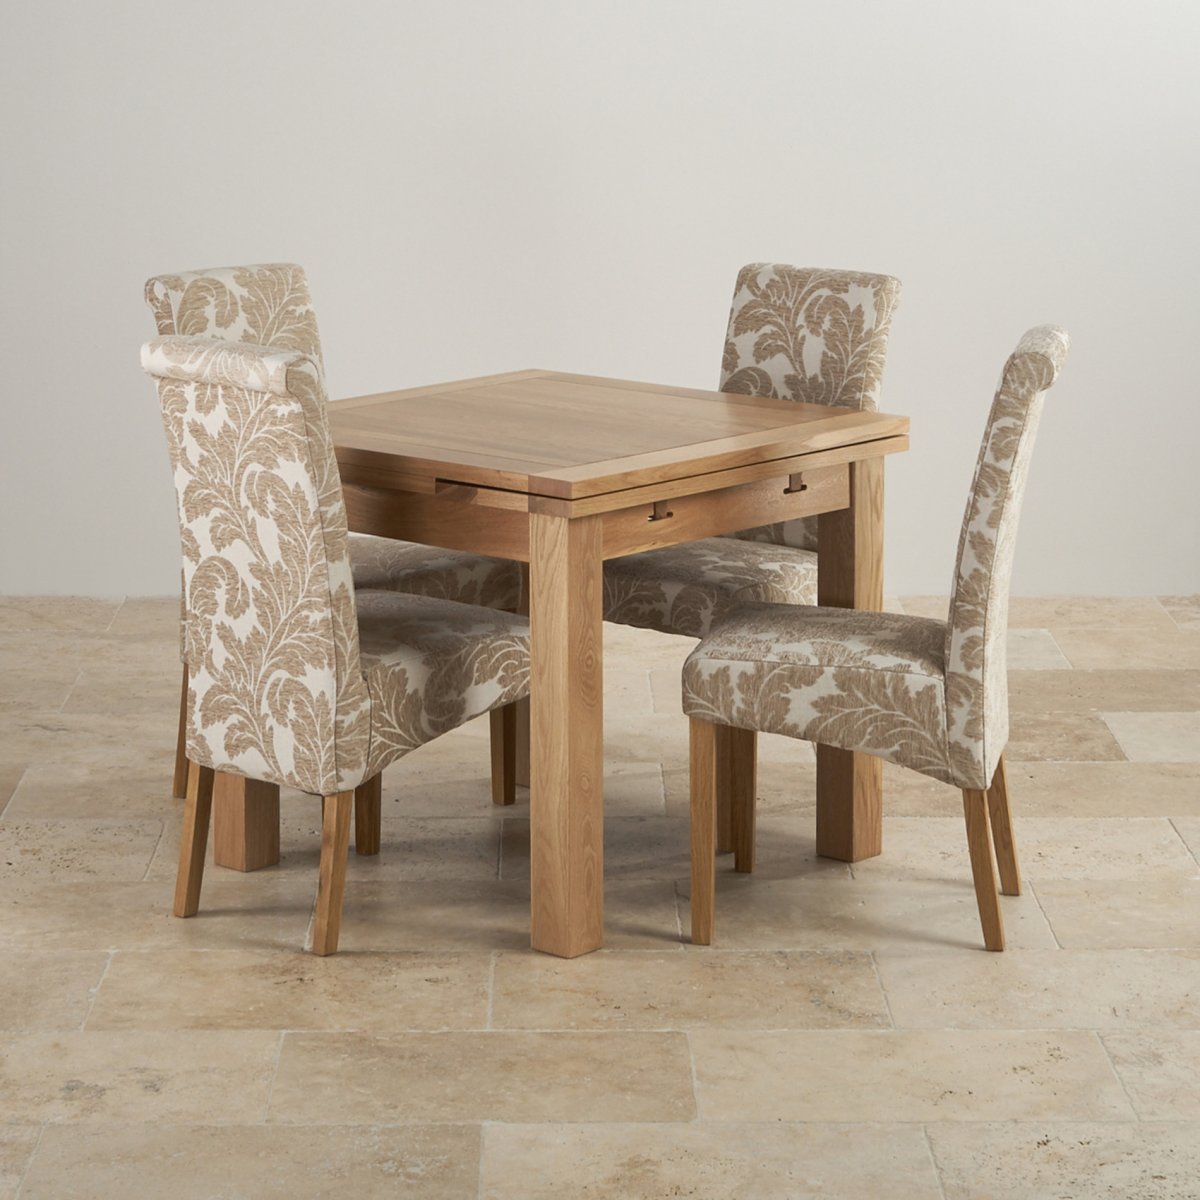 3ft Table With 4 Beige Chairs